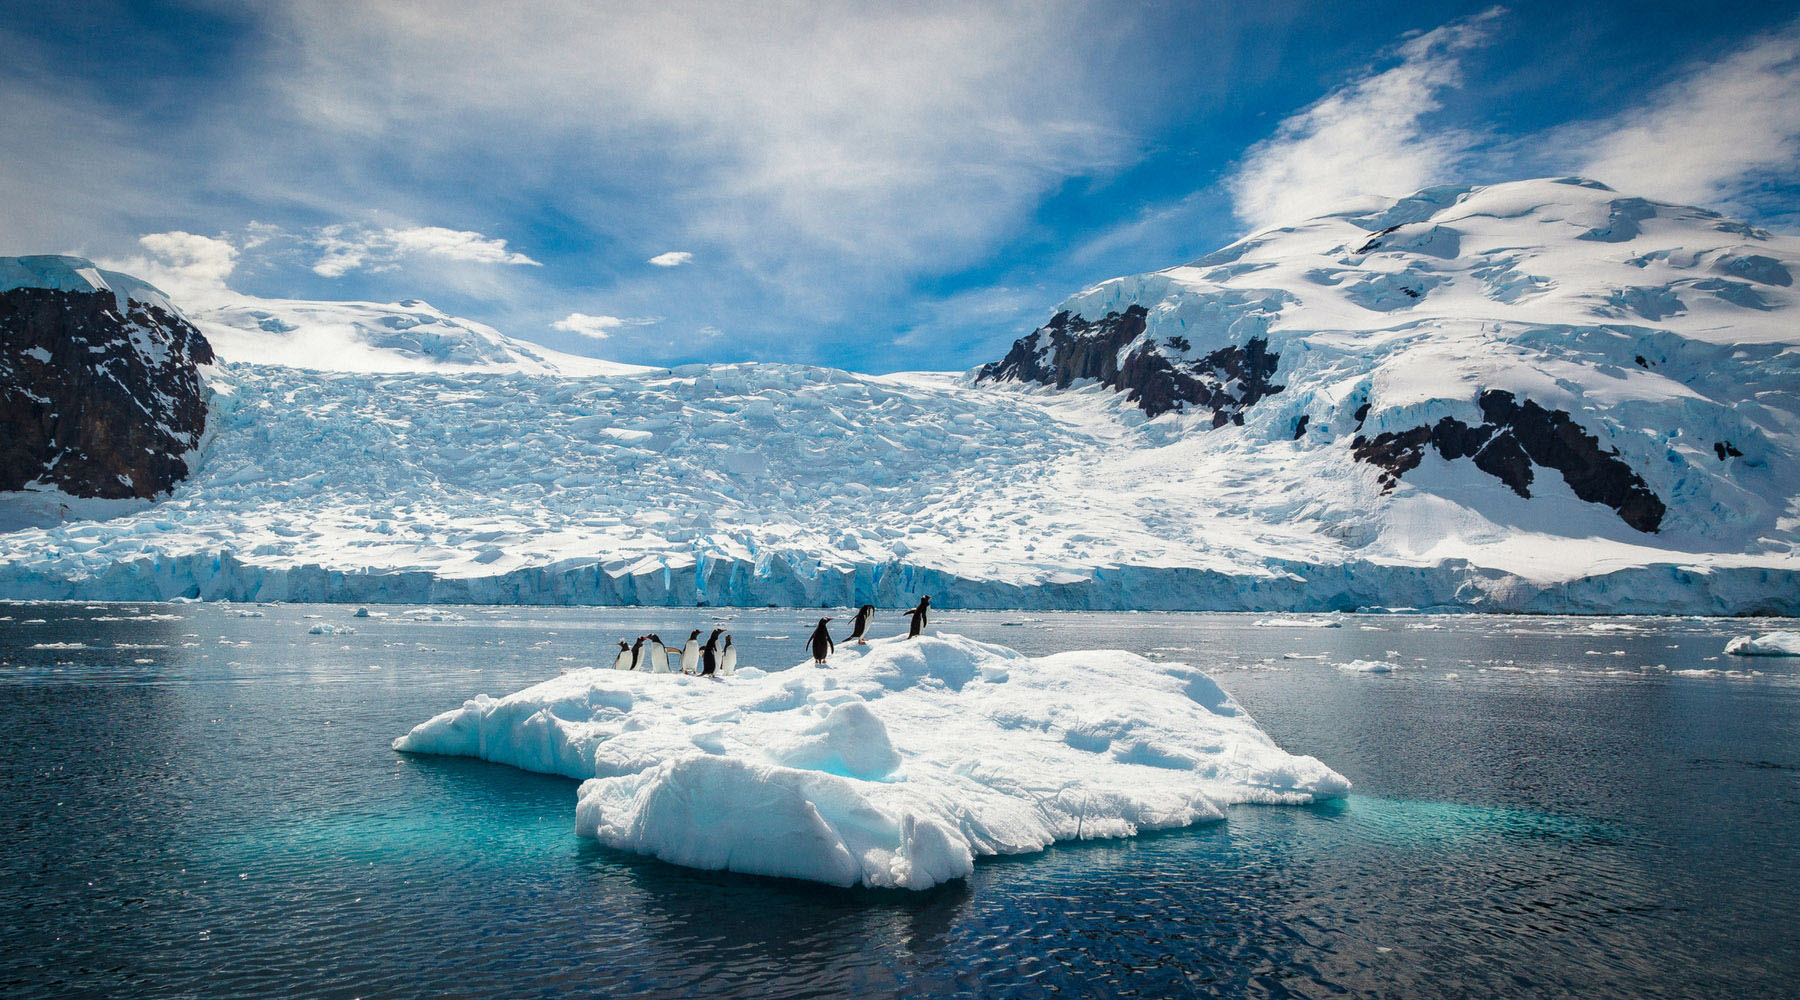 A group of penguins huddle on an iceberg in Antarctica.